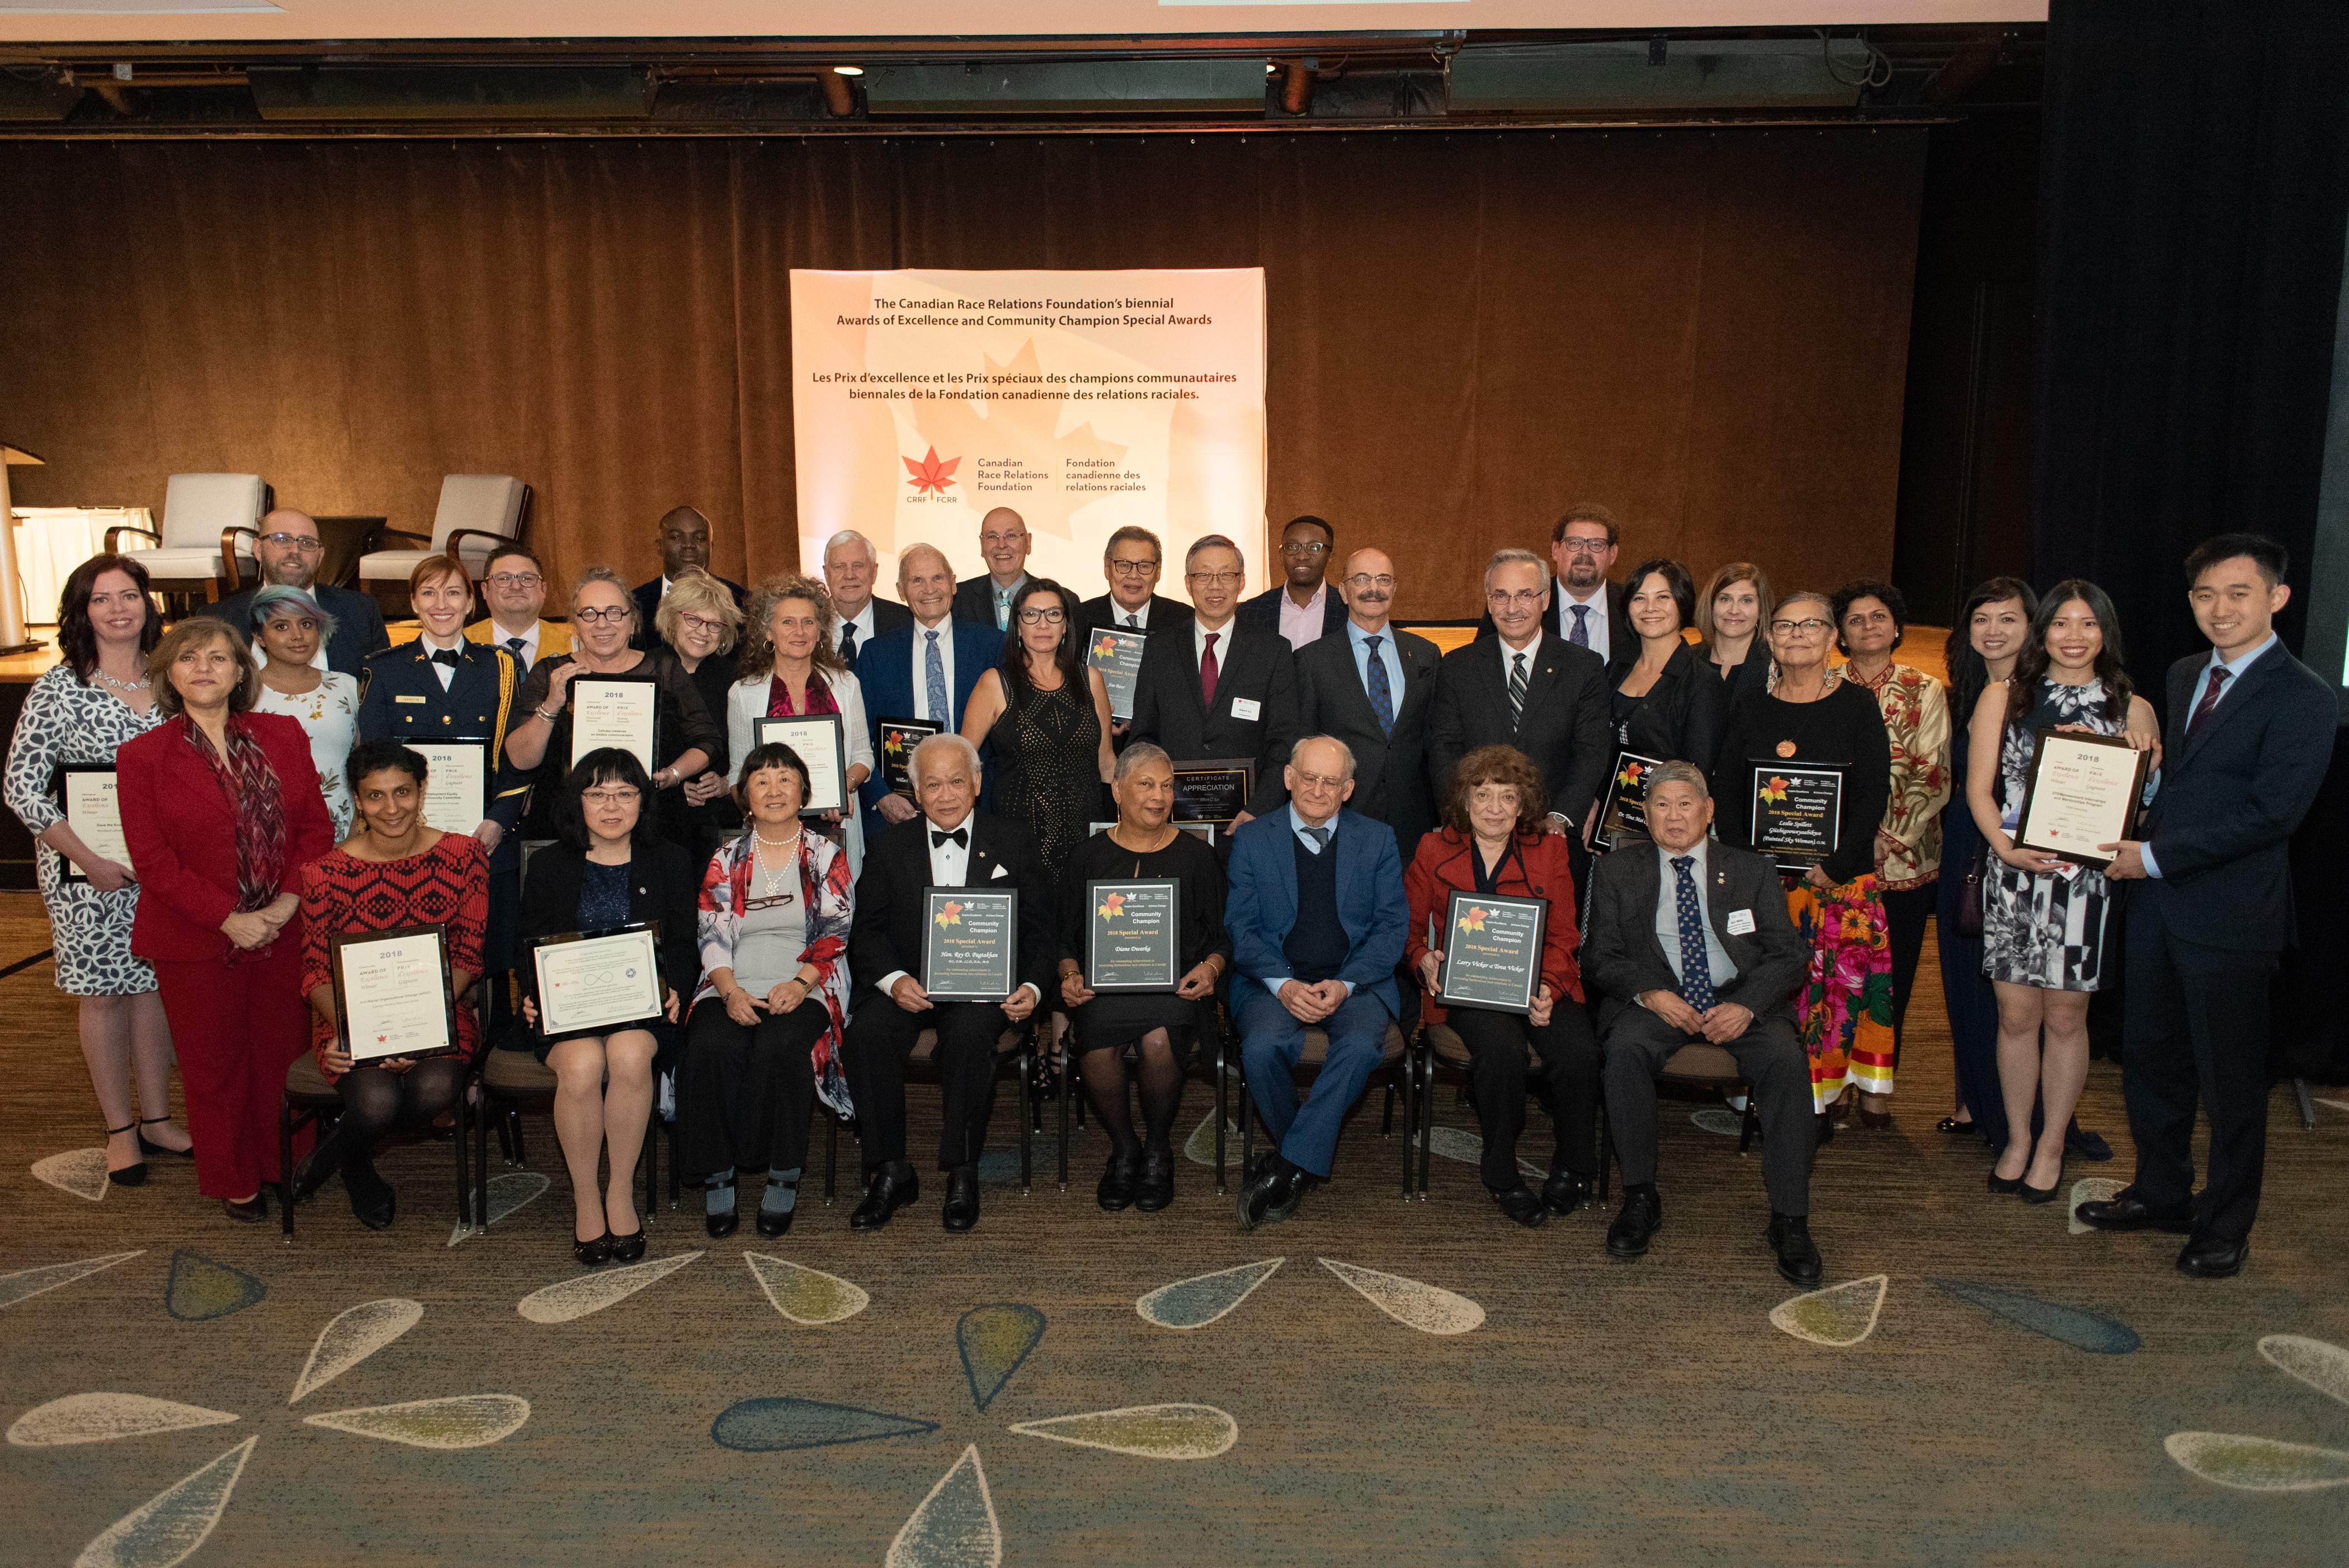 Award of Excellence recipients and board members at the Winnipeg Delta, September 27, 2018